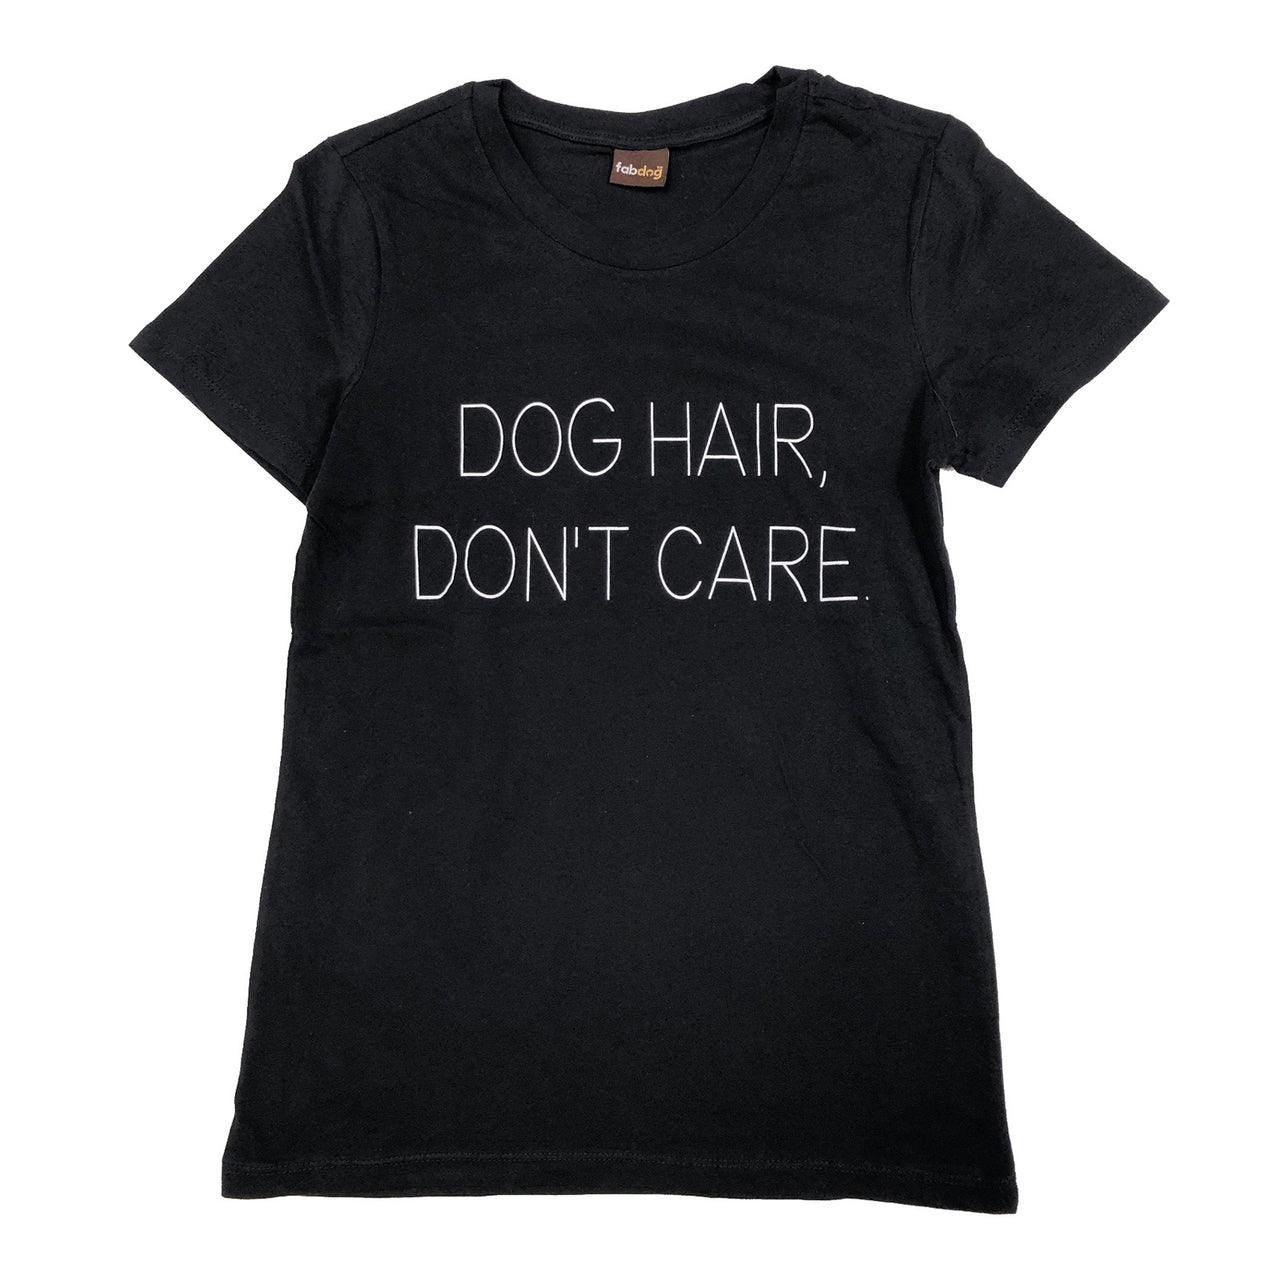 Matching Human Dog Hair, Don't Care T-shirt